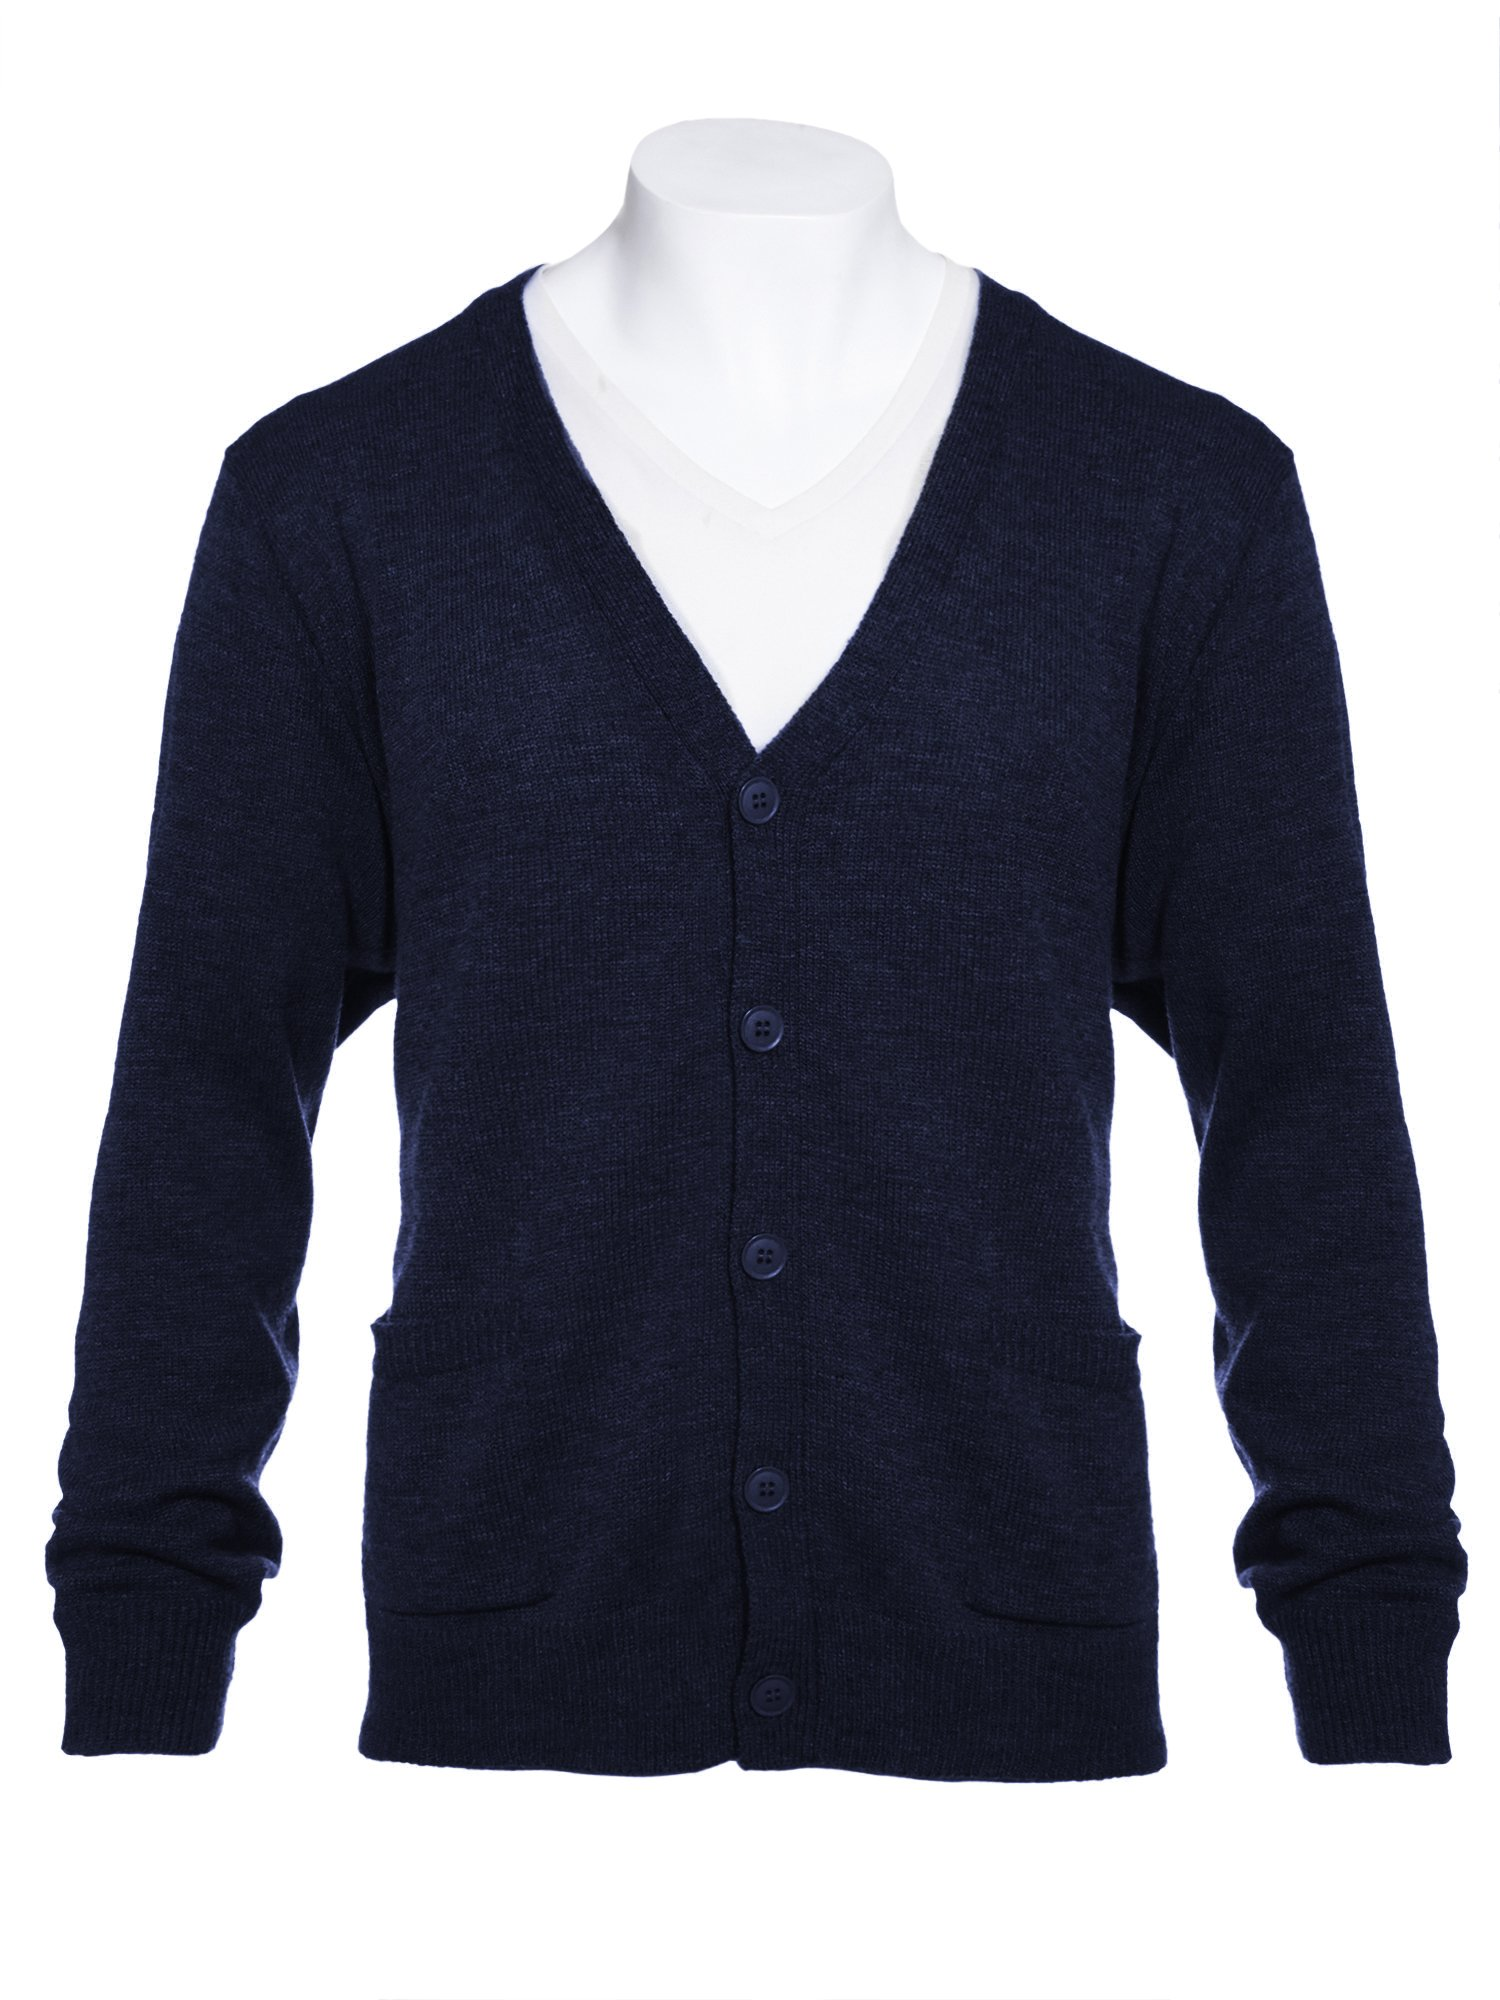 Knit Minded Mens Flat Knit Two Pocket Cardigan Navy 2X